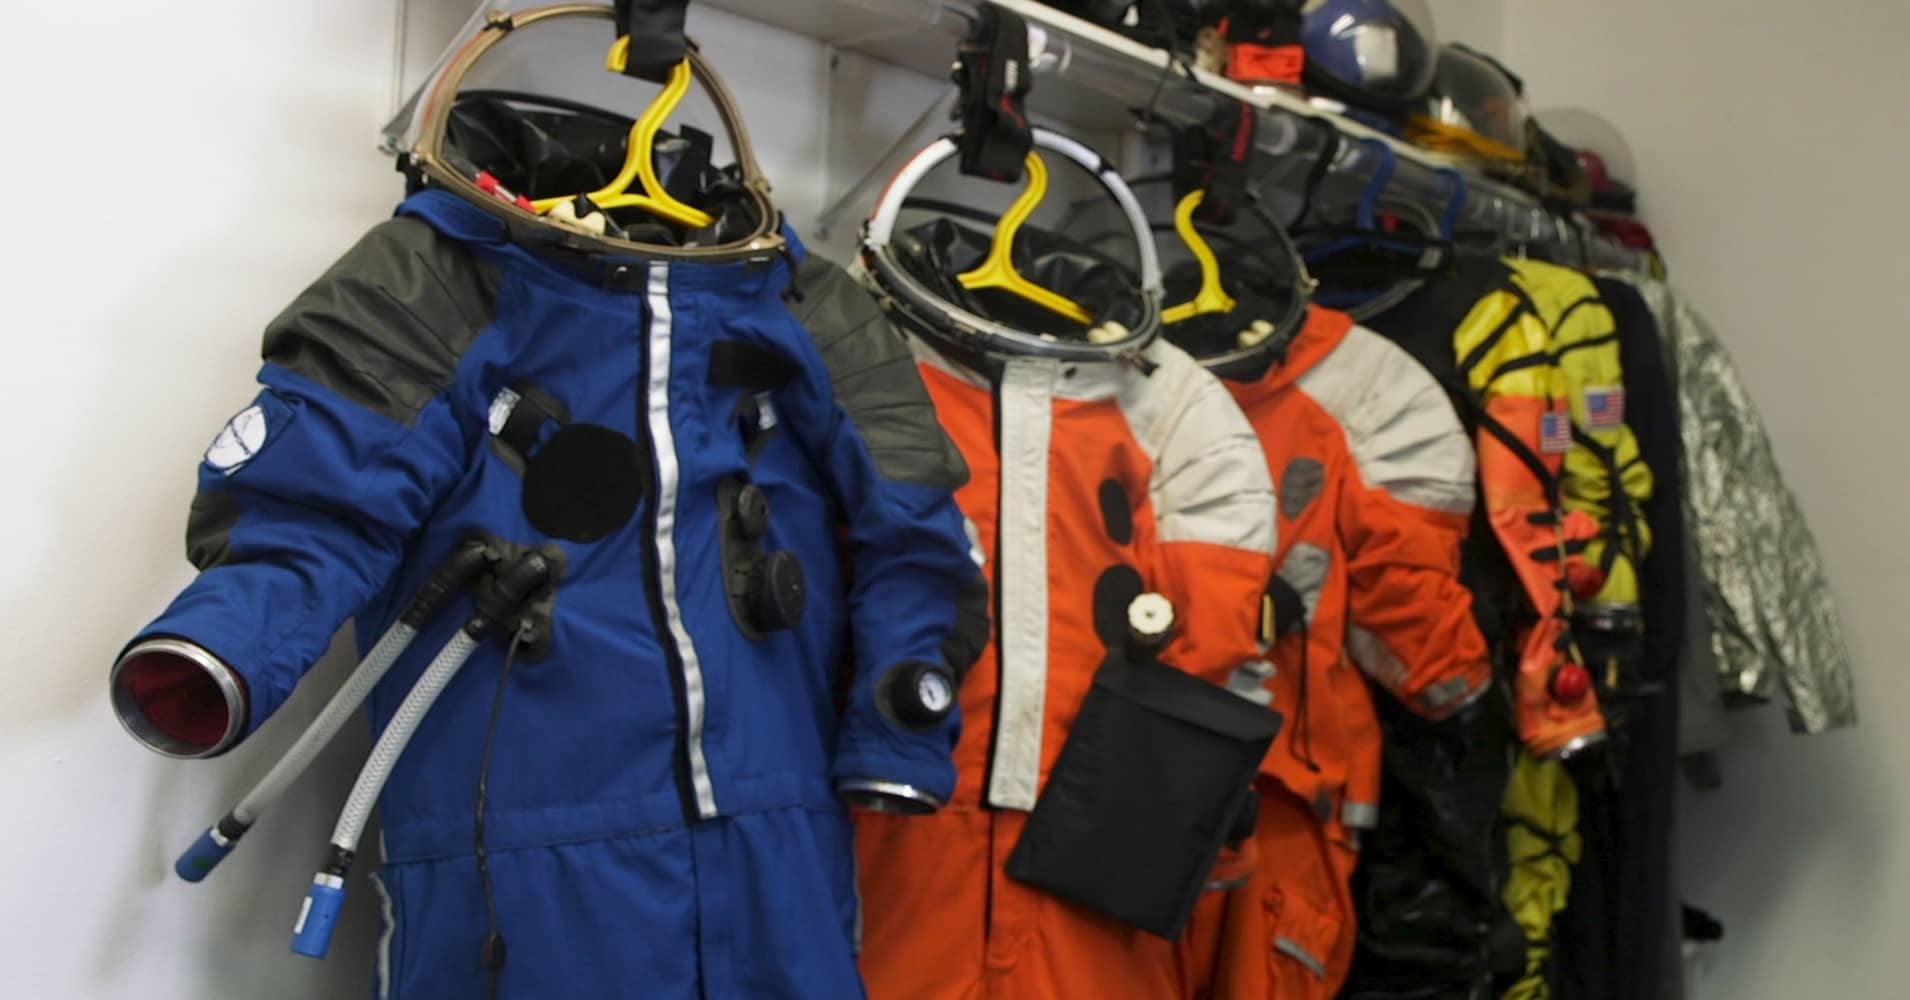 Final Frontier Design wants to make spacesuits at a fraction of NASA's cost